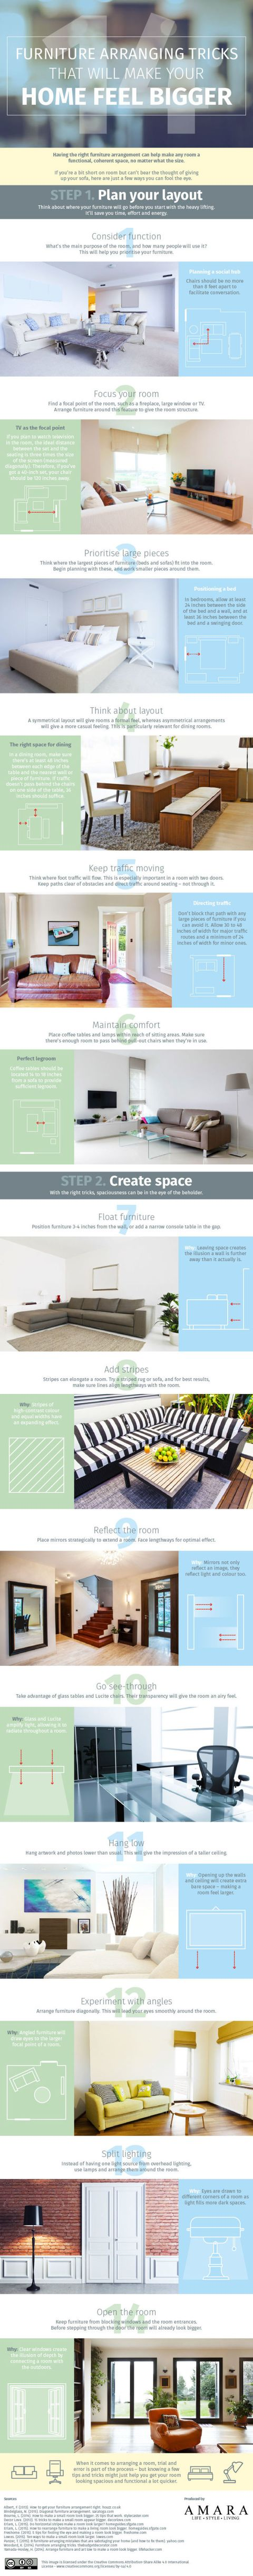 14 Furniture Arranging Tricks To Make Your Home Feel Bigger on office at home, litter at home, golf at home, shopping at home, internet service at home, floor at home, jewelry at home, art at home, security at home, cell phones at home, desk at home, table at home, internet connection at home, storage at home, cars at home, metalworking at home, landscaping at home,